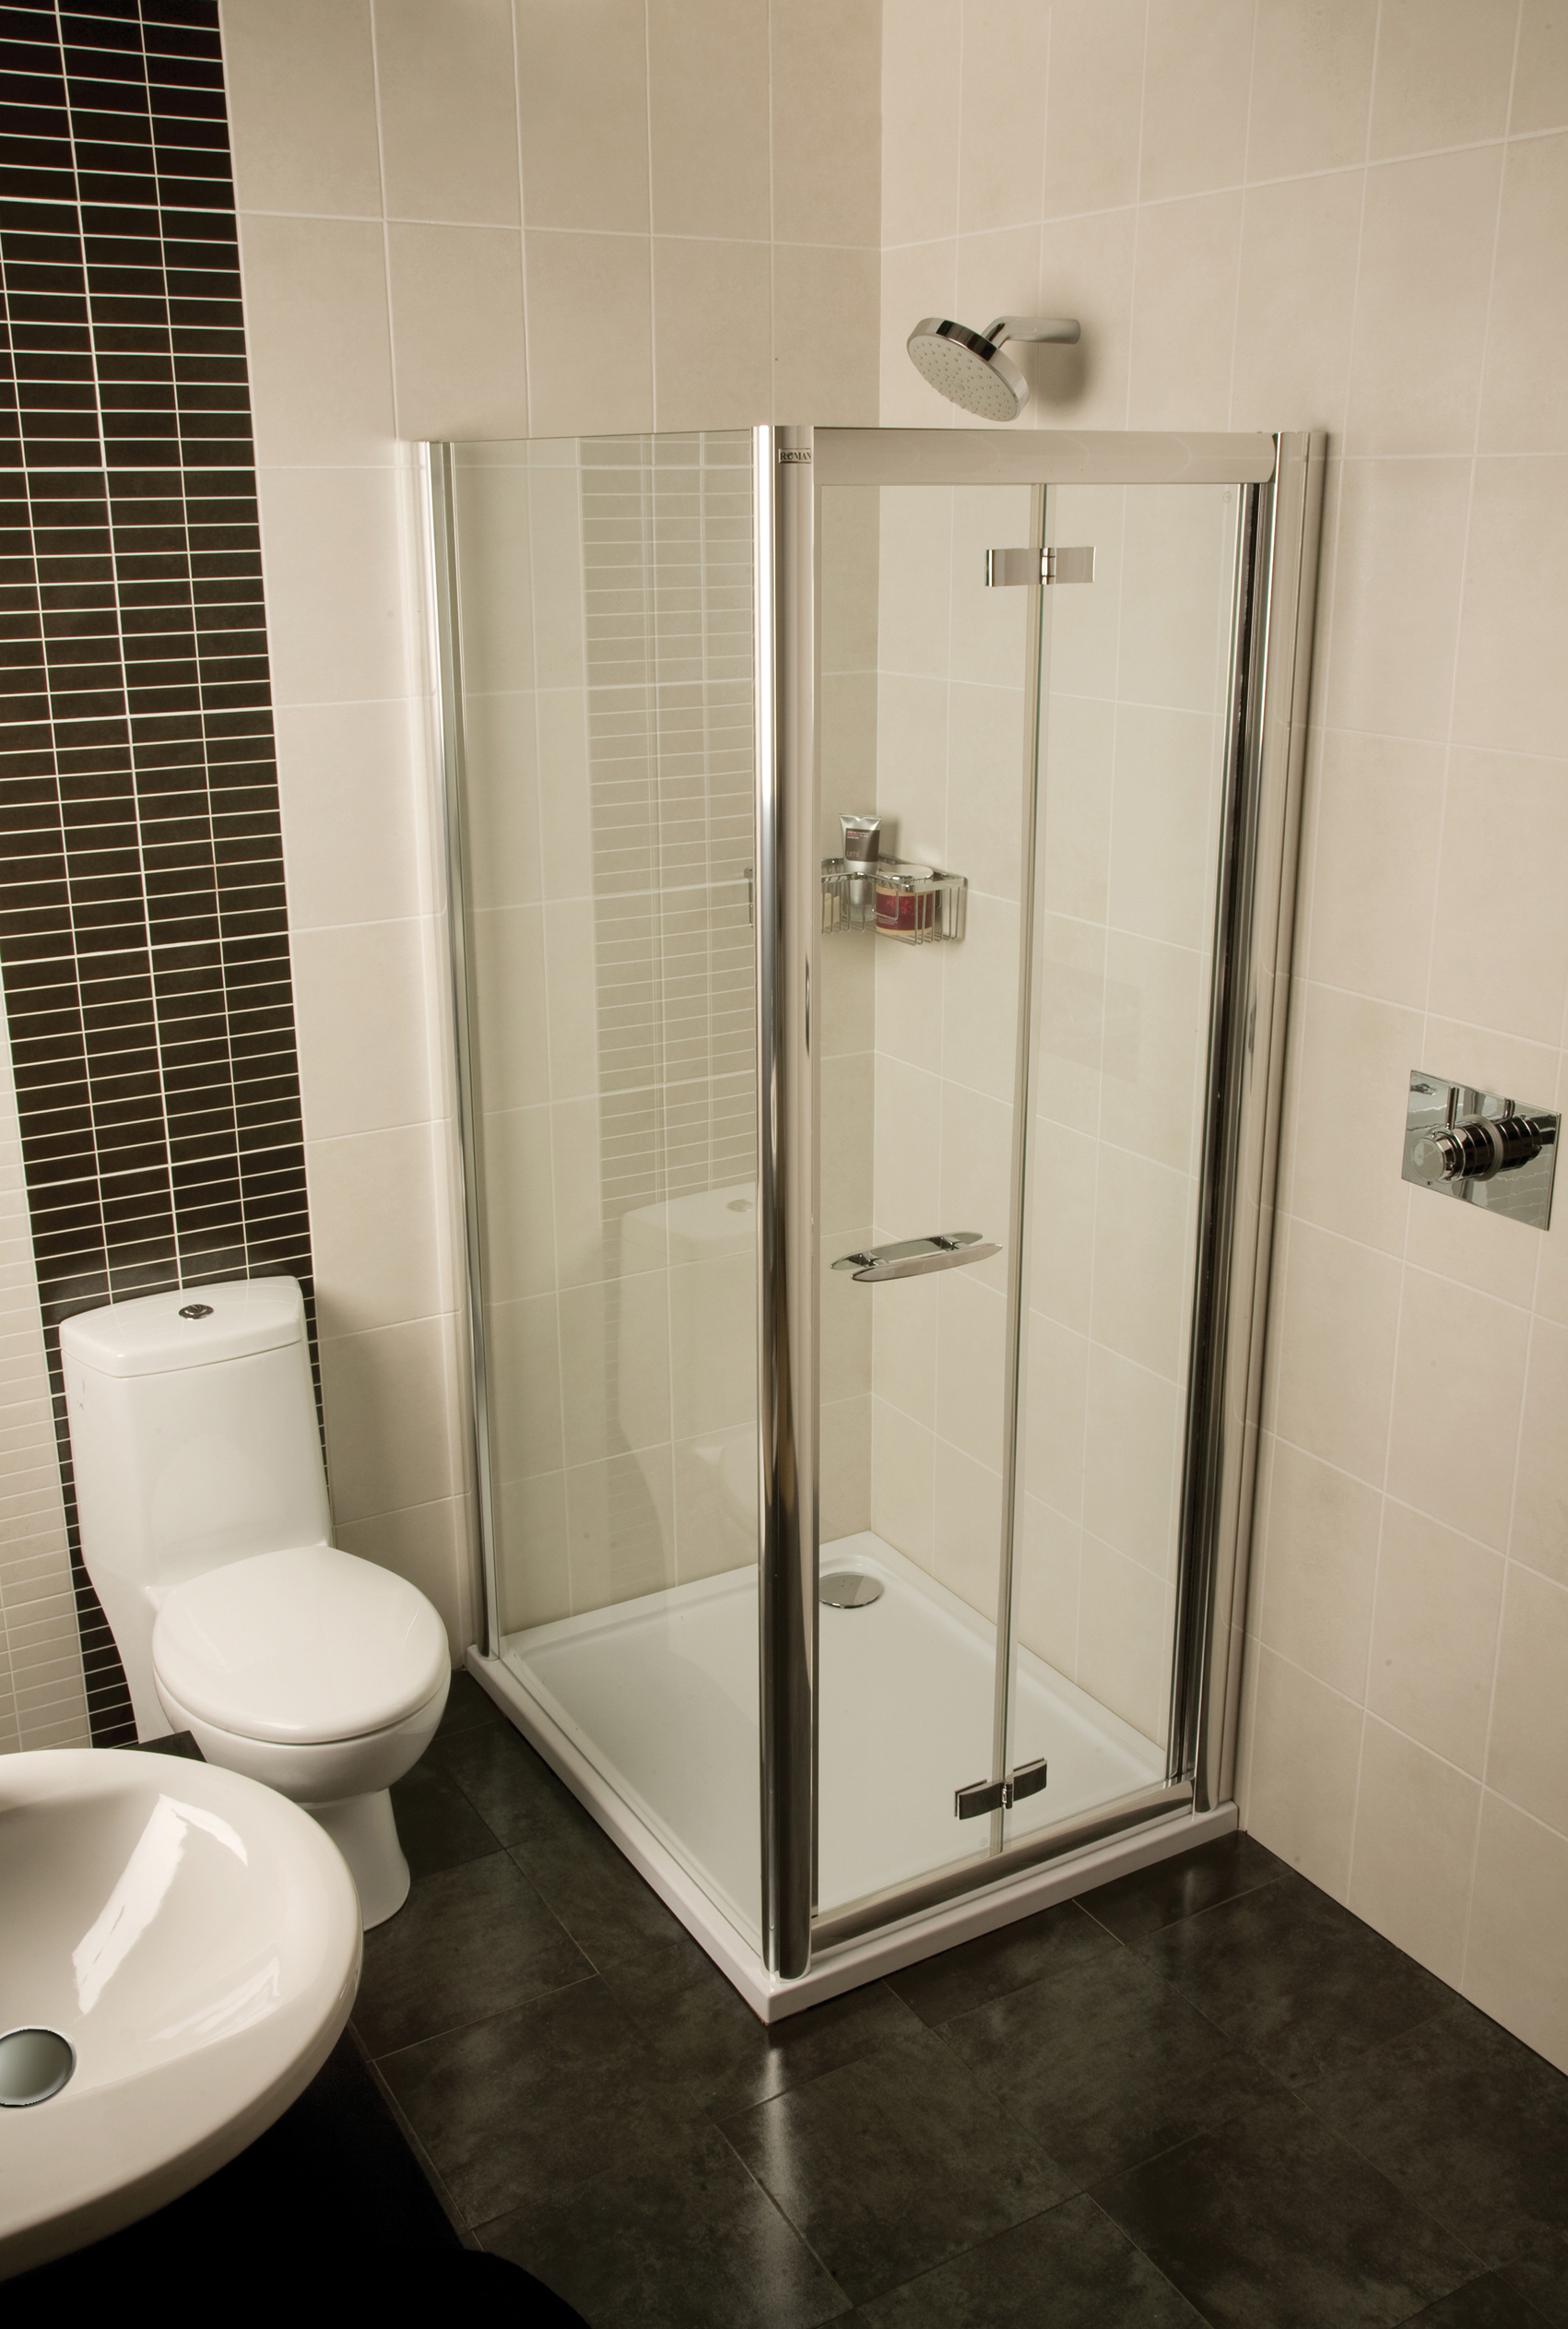 Space Saving Shower Solutions For Small Bathroom Roman Showers 39 Blog